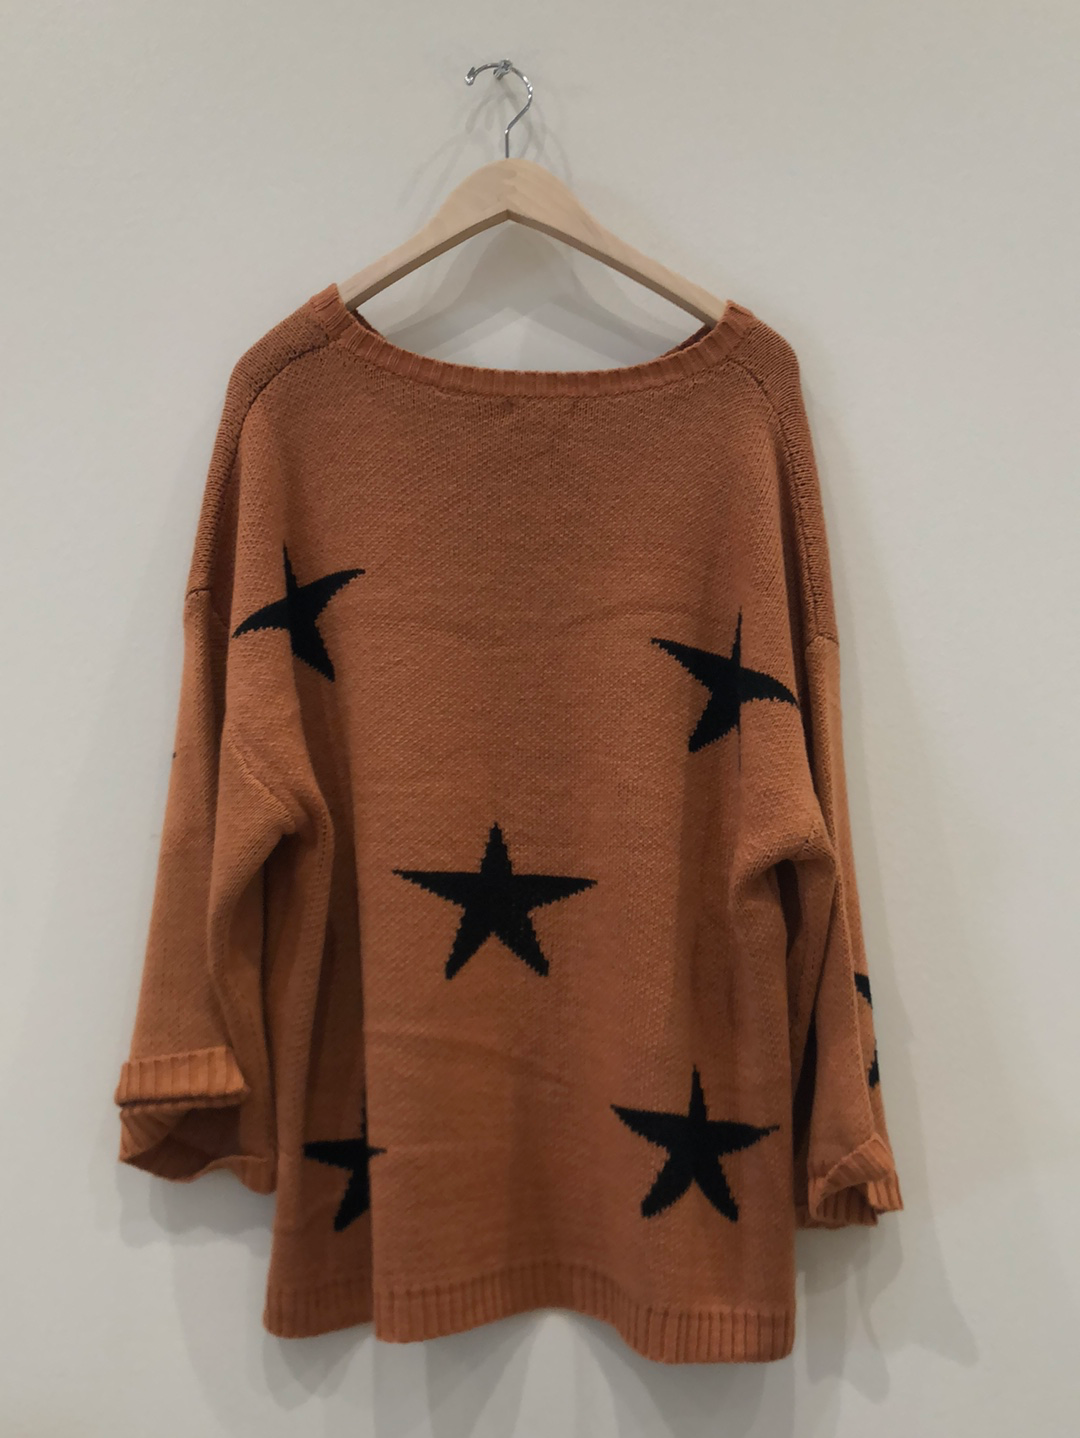 Clay Star Sweater (Available Straight + Plus)